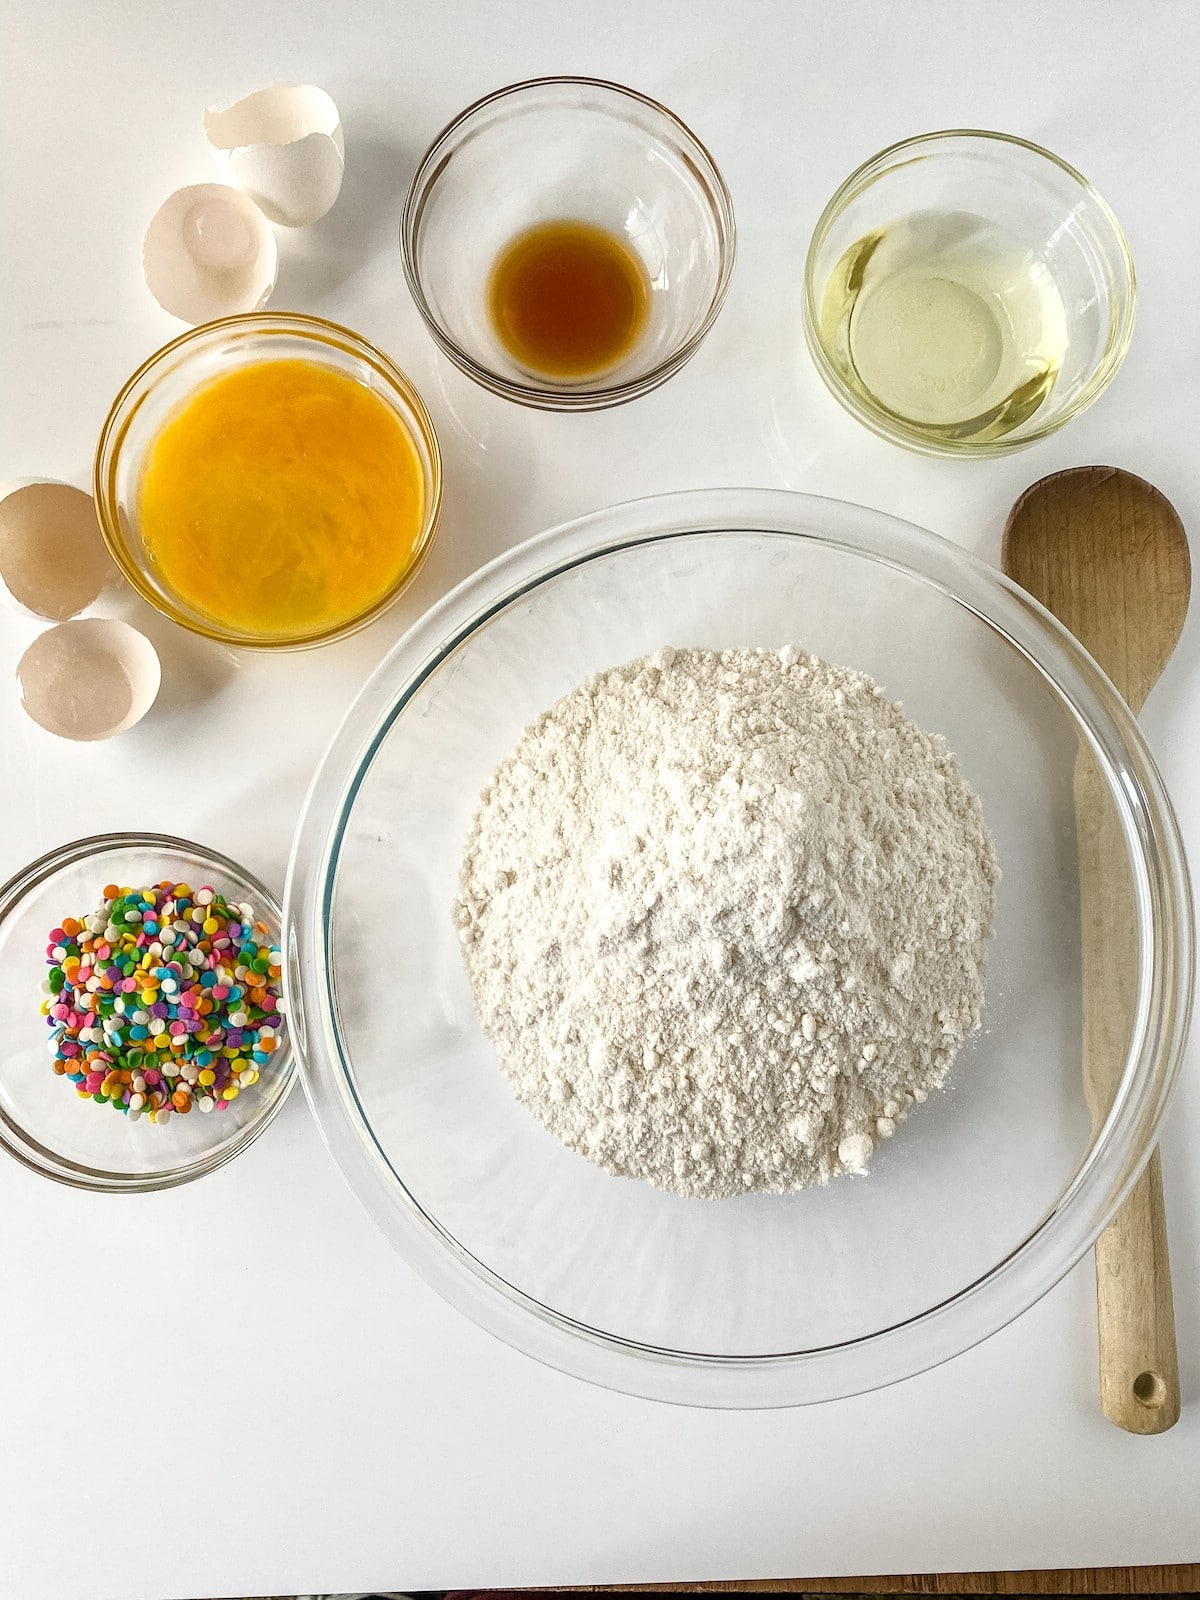 Ingredients for confetti sandwich cookies in bowls on table